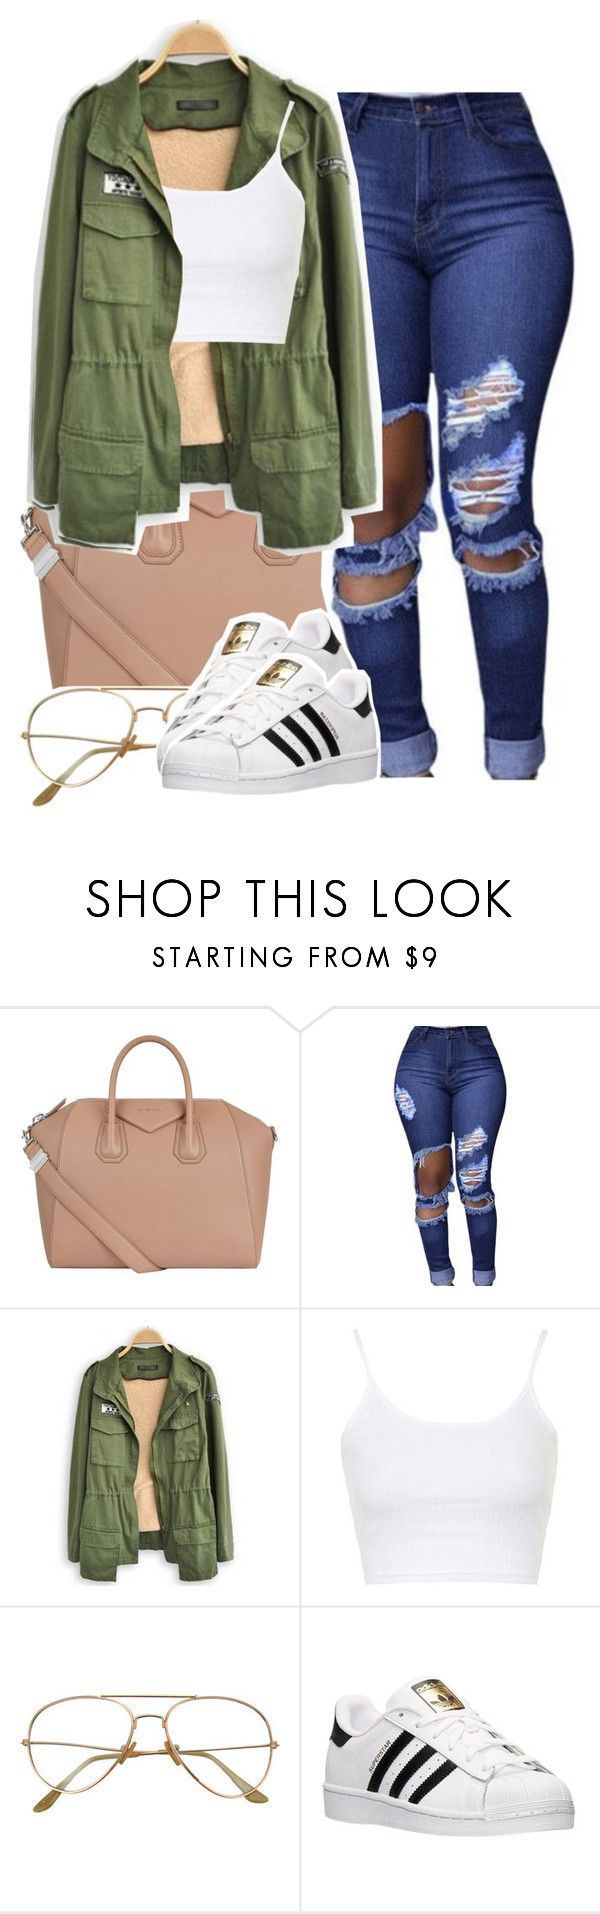 2016 Hot Sale adidas Sneaker Release And Sales ,provide high quality Cheap adidas shoes for men  adidas shoes for women, Up TO 63% Off ADIDAS Women's Shoes - http://amzn.to/2iYiMFQ